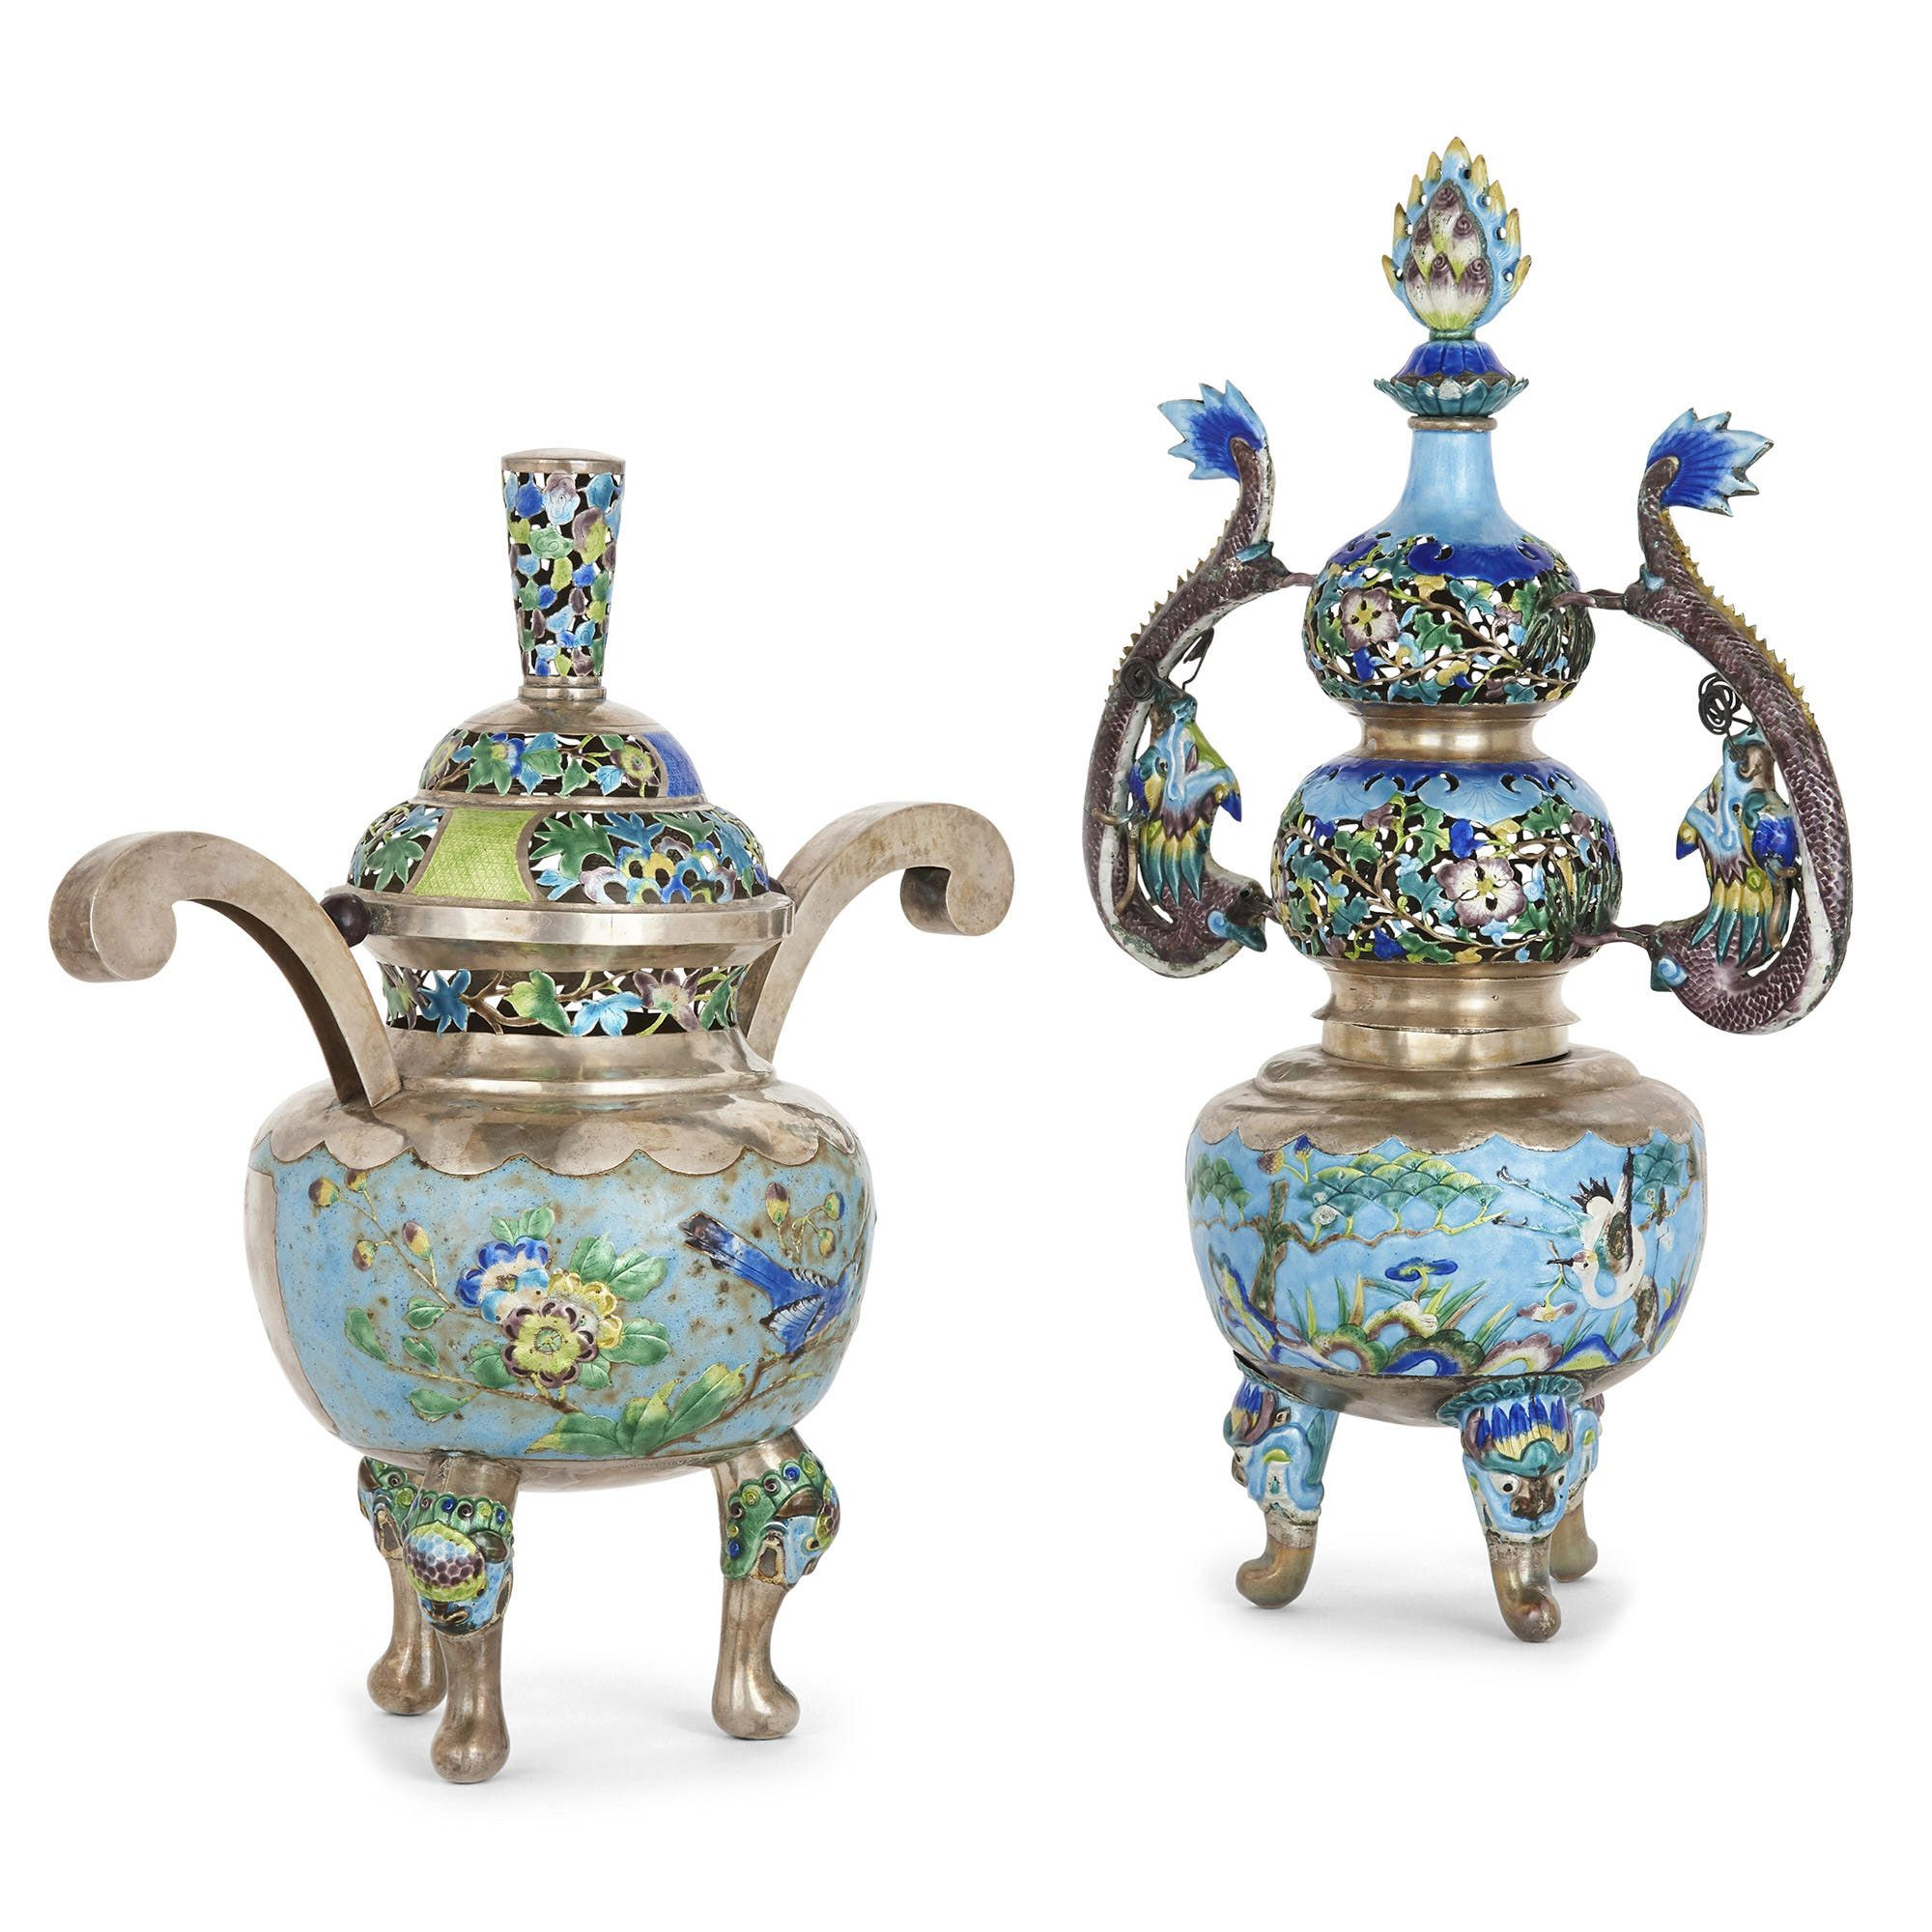 Two Qing Dynasty Silver And Enamel Incense Burners